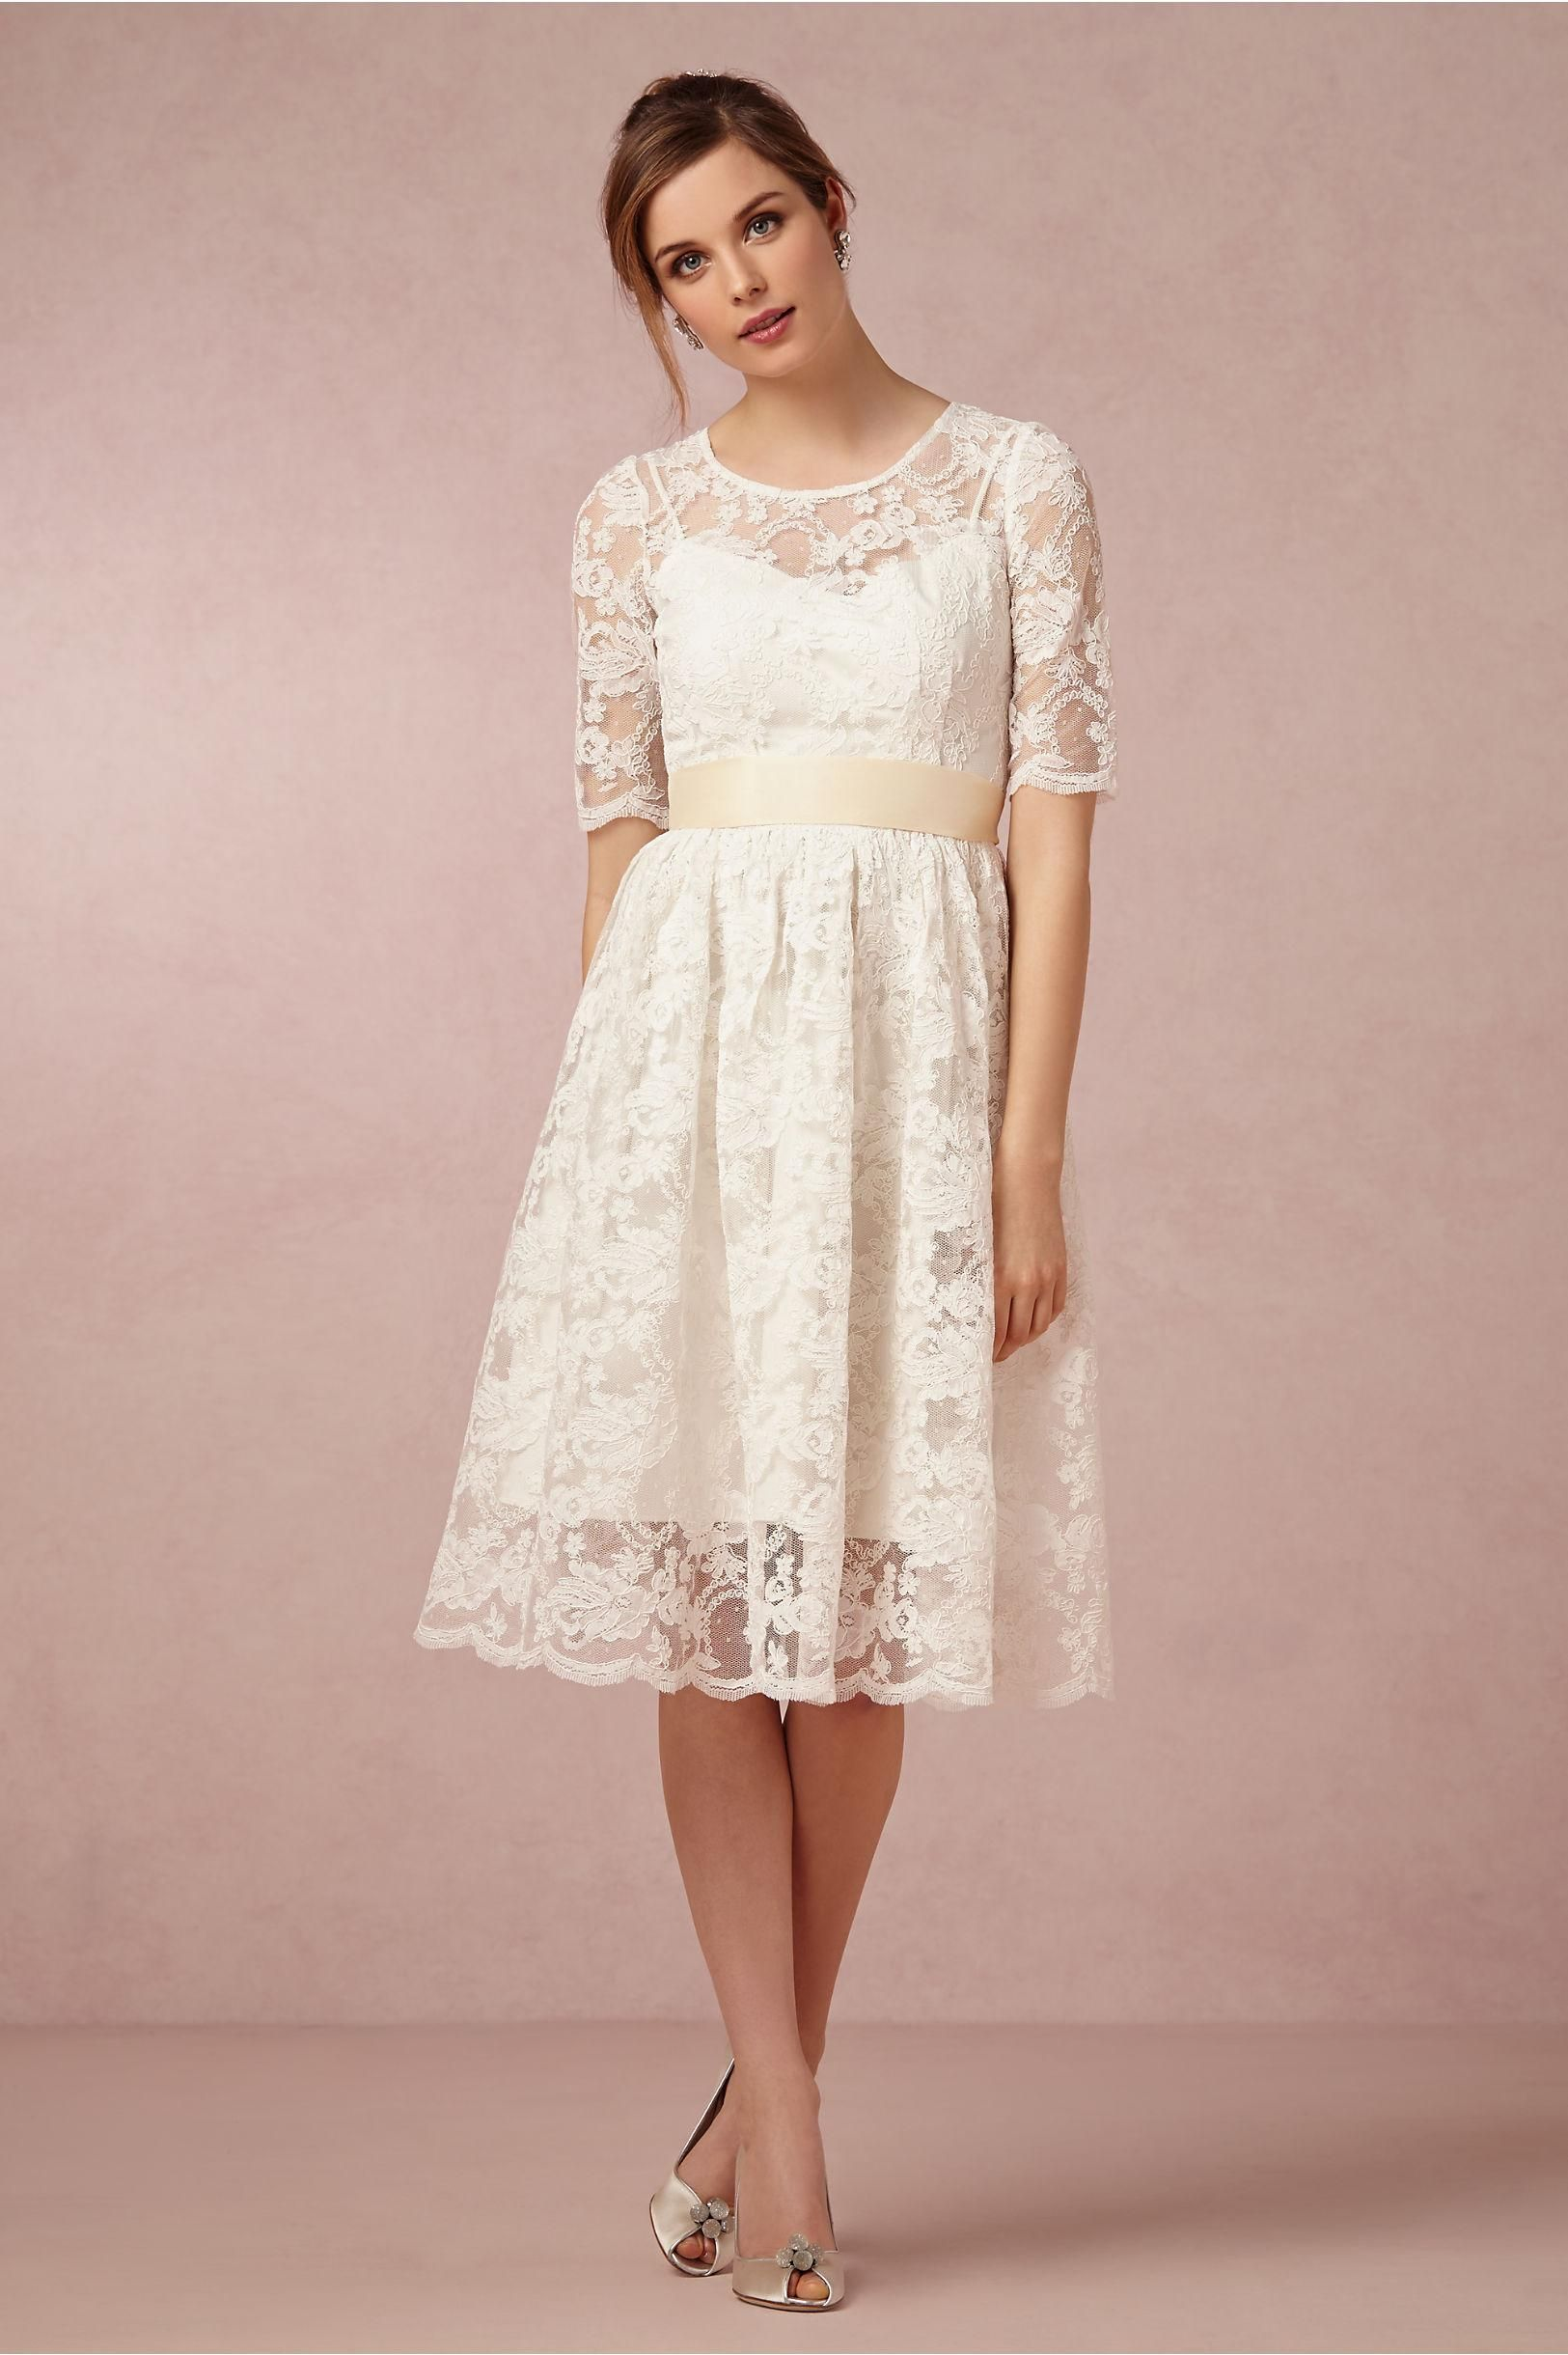 product   Tessa Dress from BHLDN   designed by leanne marshall   A ...